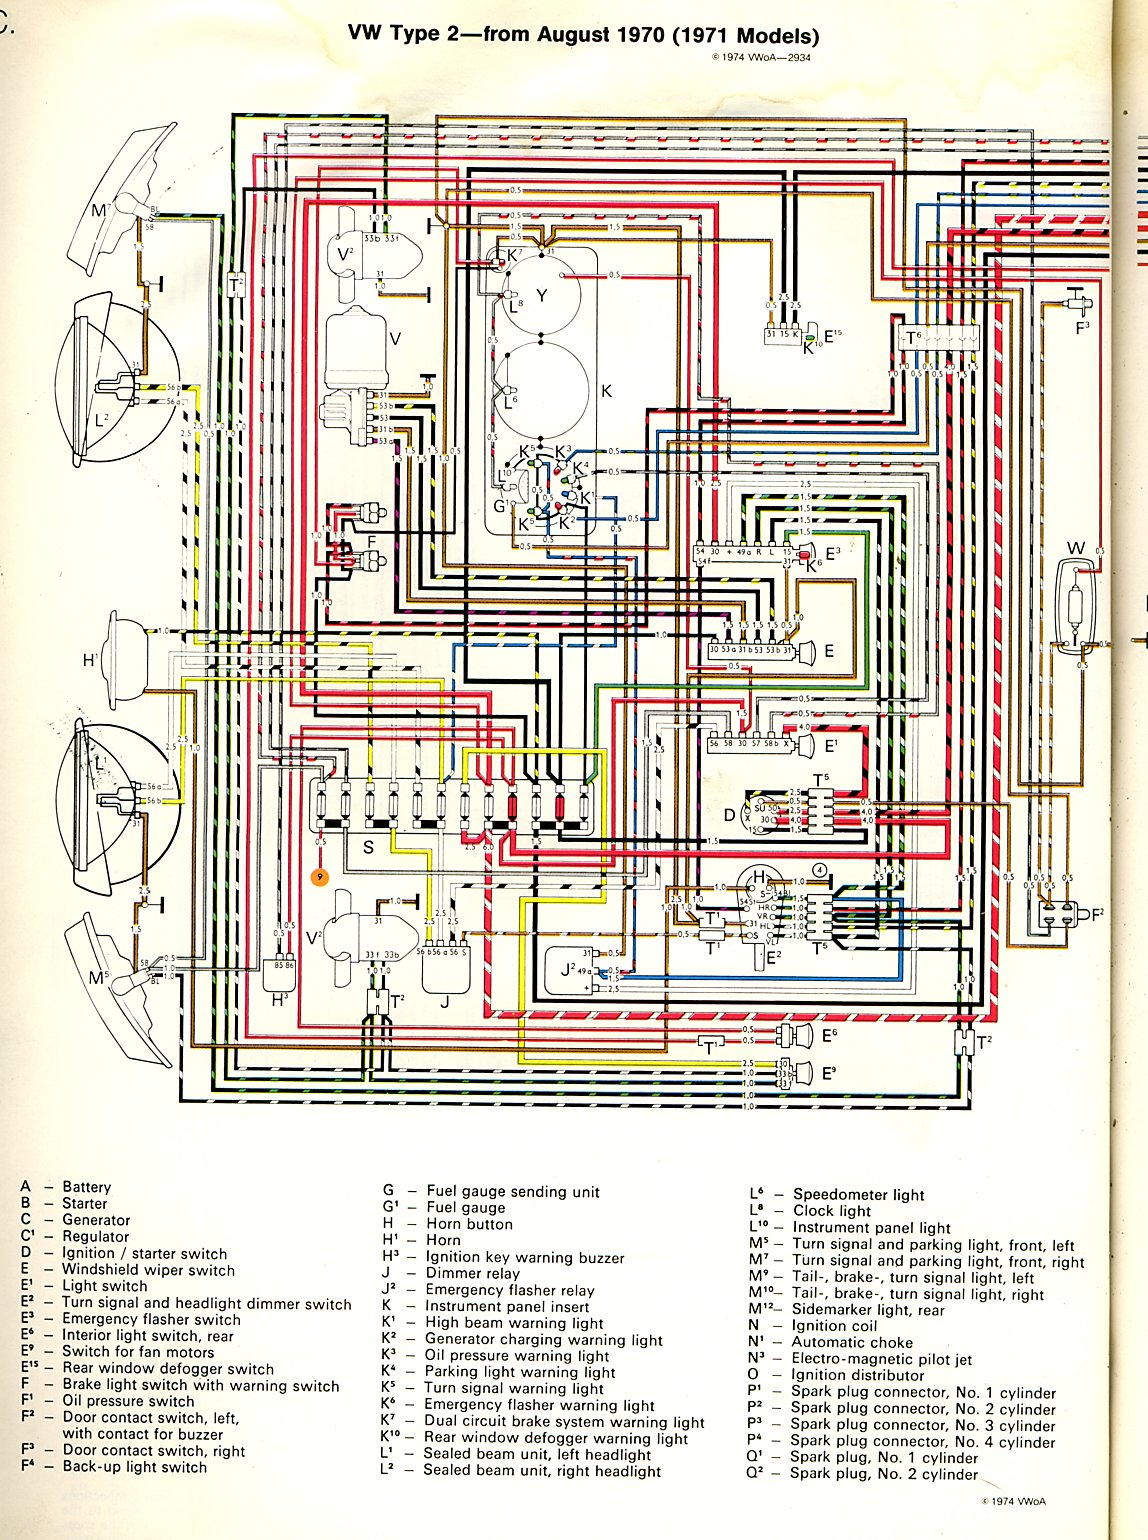 1972 vw bus wiring diagram warn atv winch switch thesamba type 2 diagrams